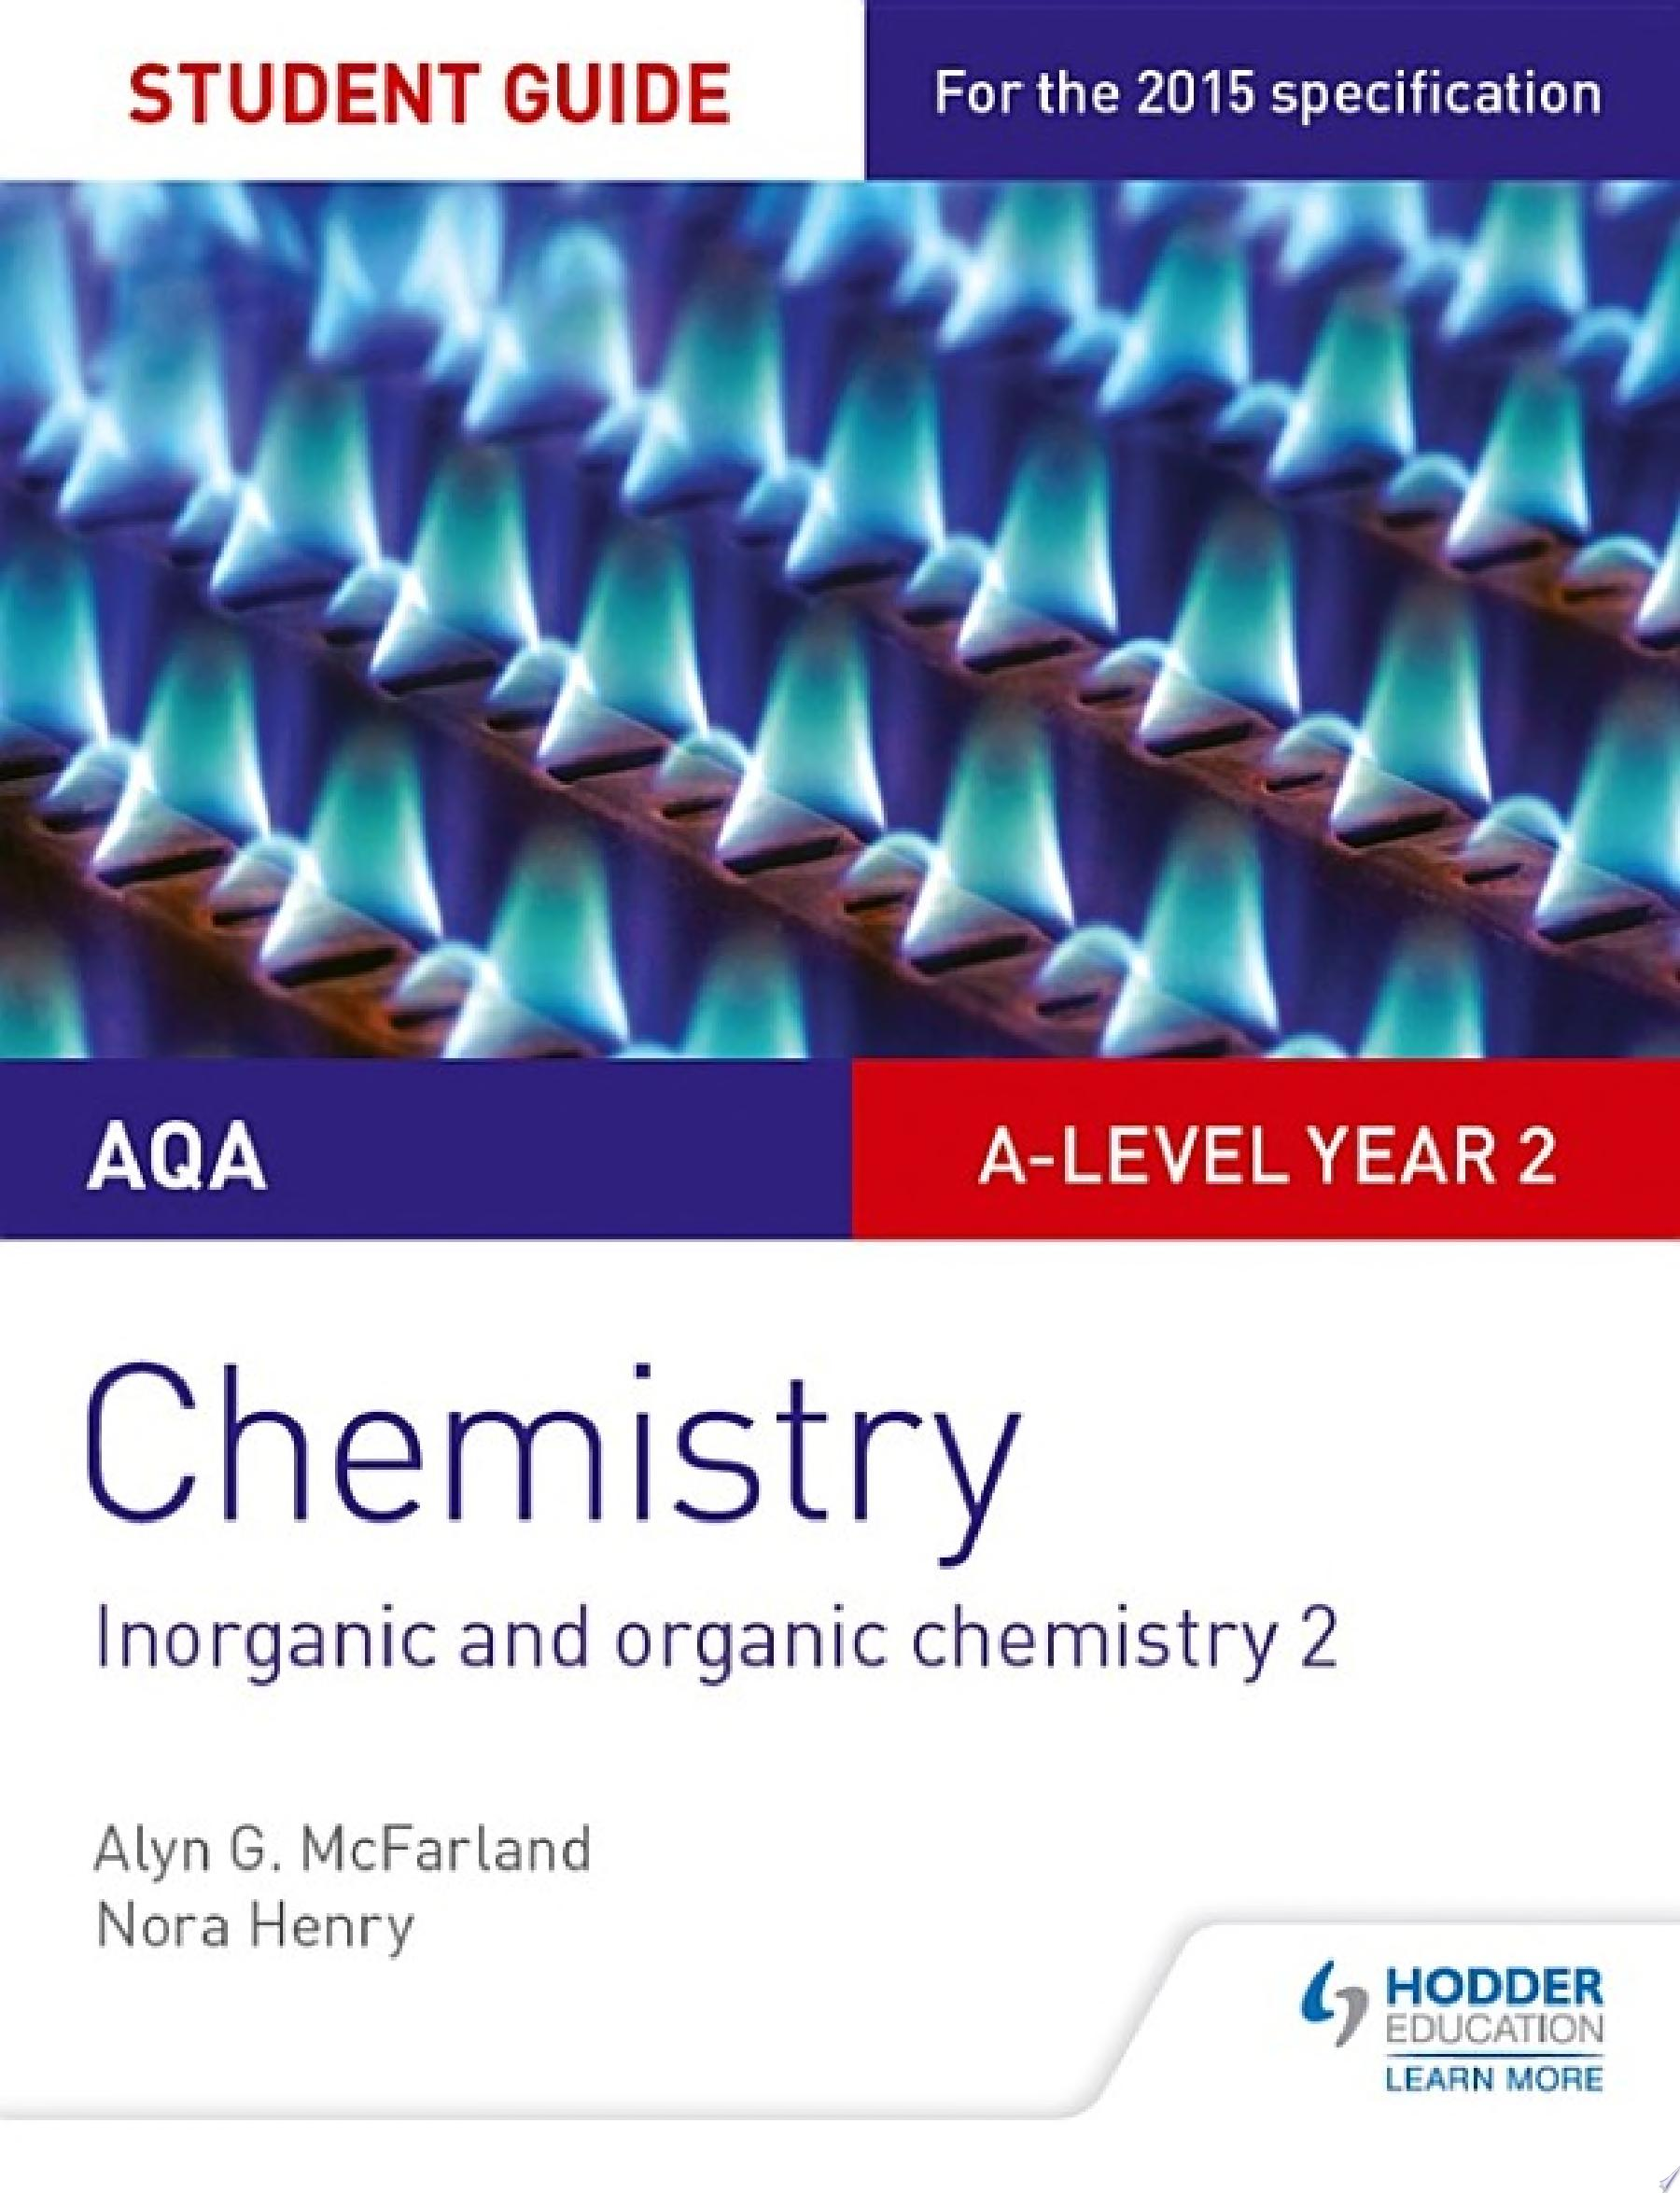 AQA A level Year 2 Chemistry Student Guide  Inorganic and organic chemistry 2